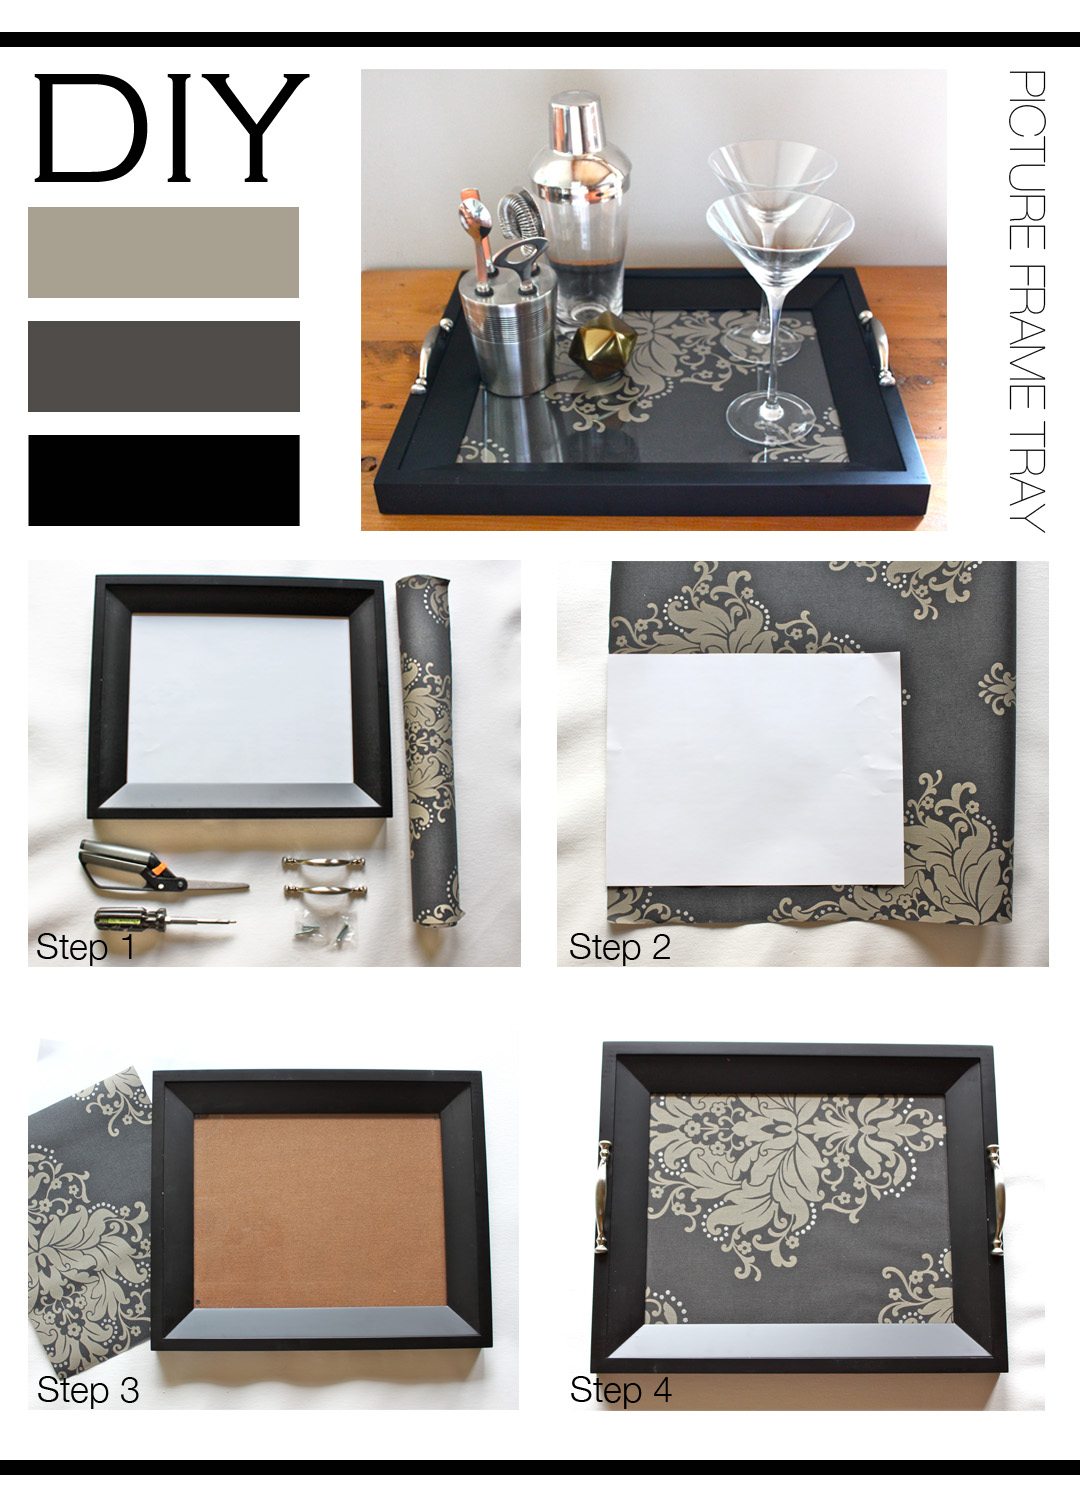 Diy Paper Picture Frame Ideas The Image